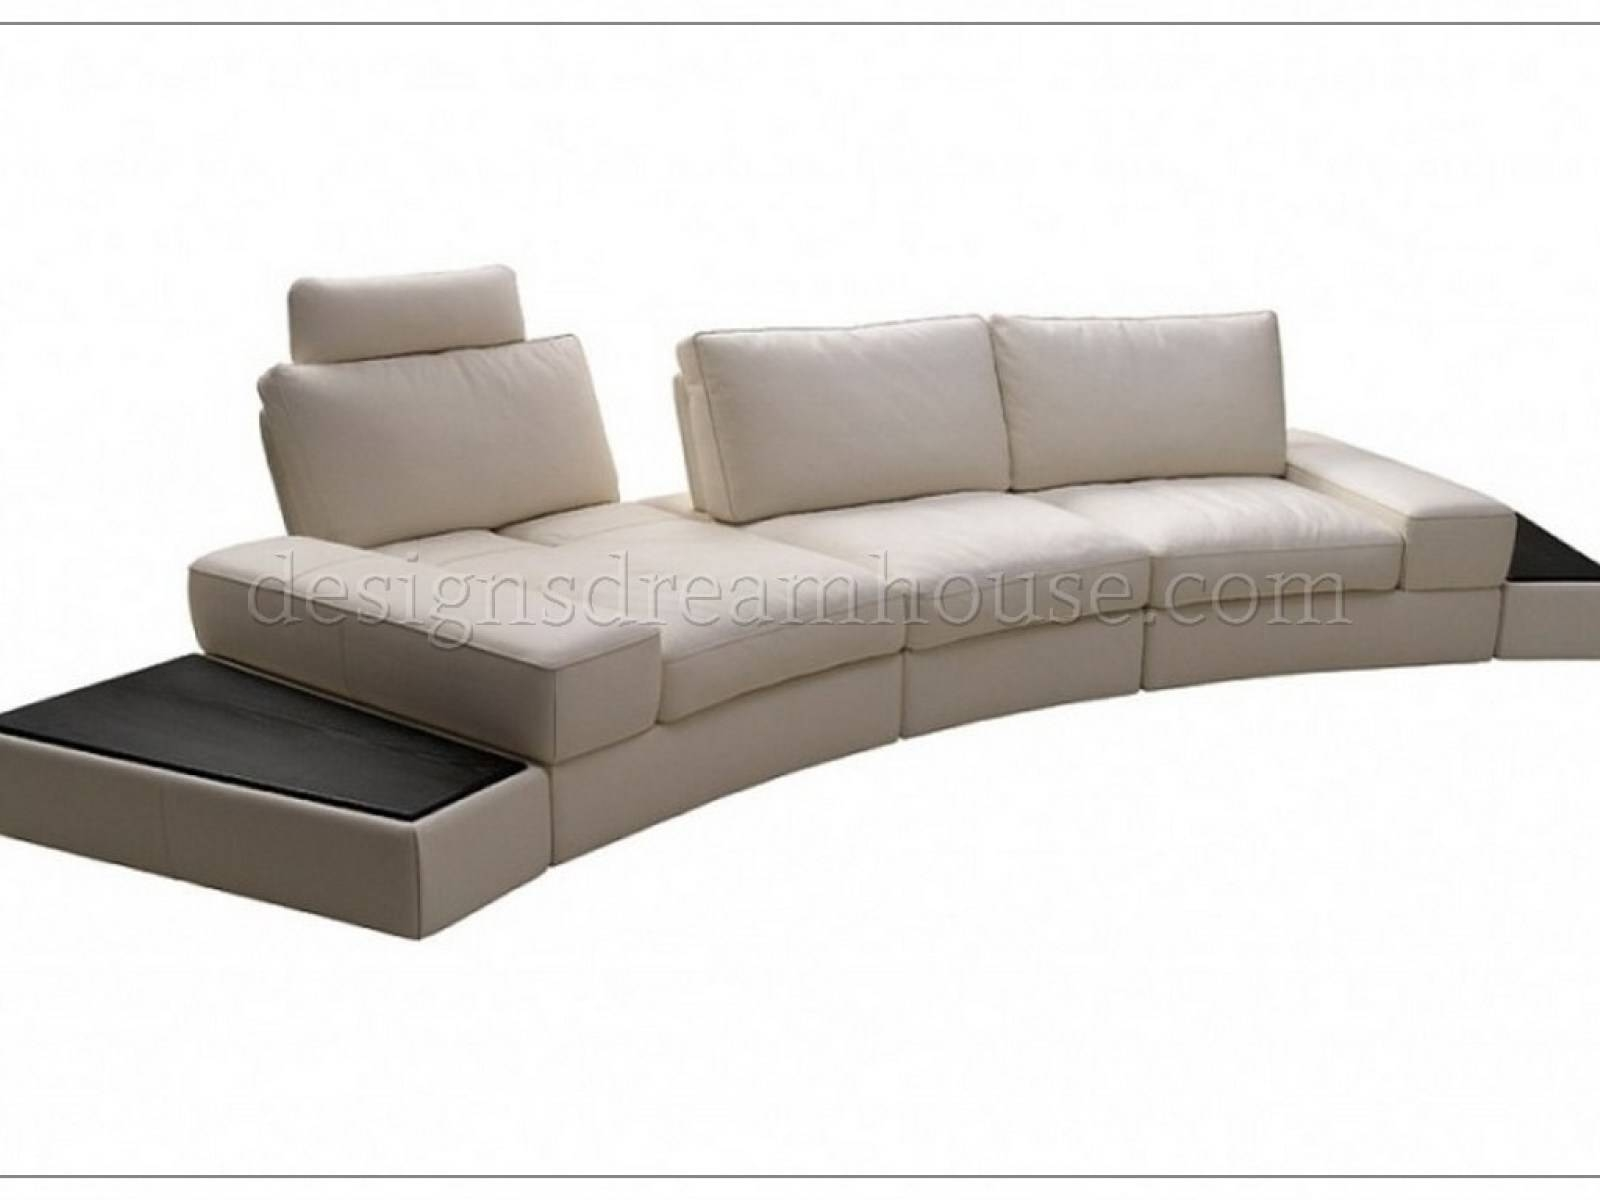 Furniture: Excellent Beige Sectional Sofa For Your Living Room with regard to Abbyson Living Charlotte Dark Brown Sectional Sofa and Ottoman (Image 18 of 30)